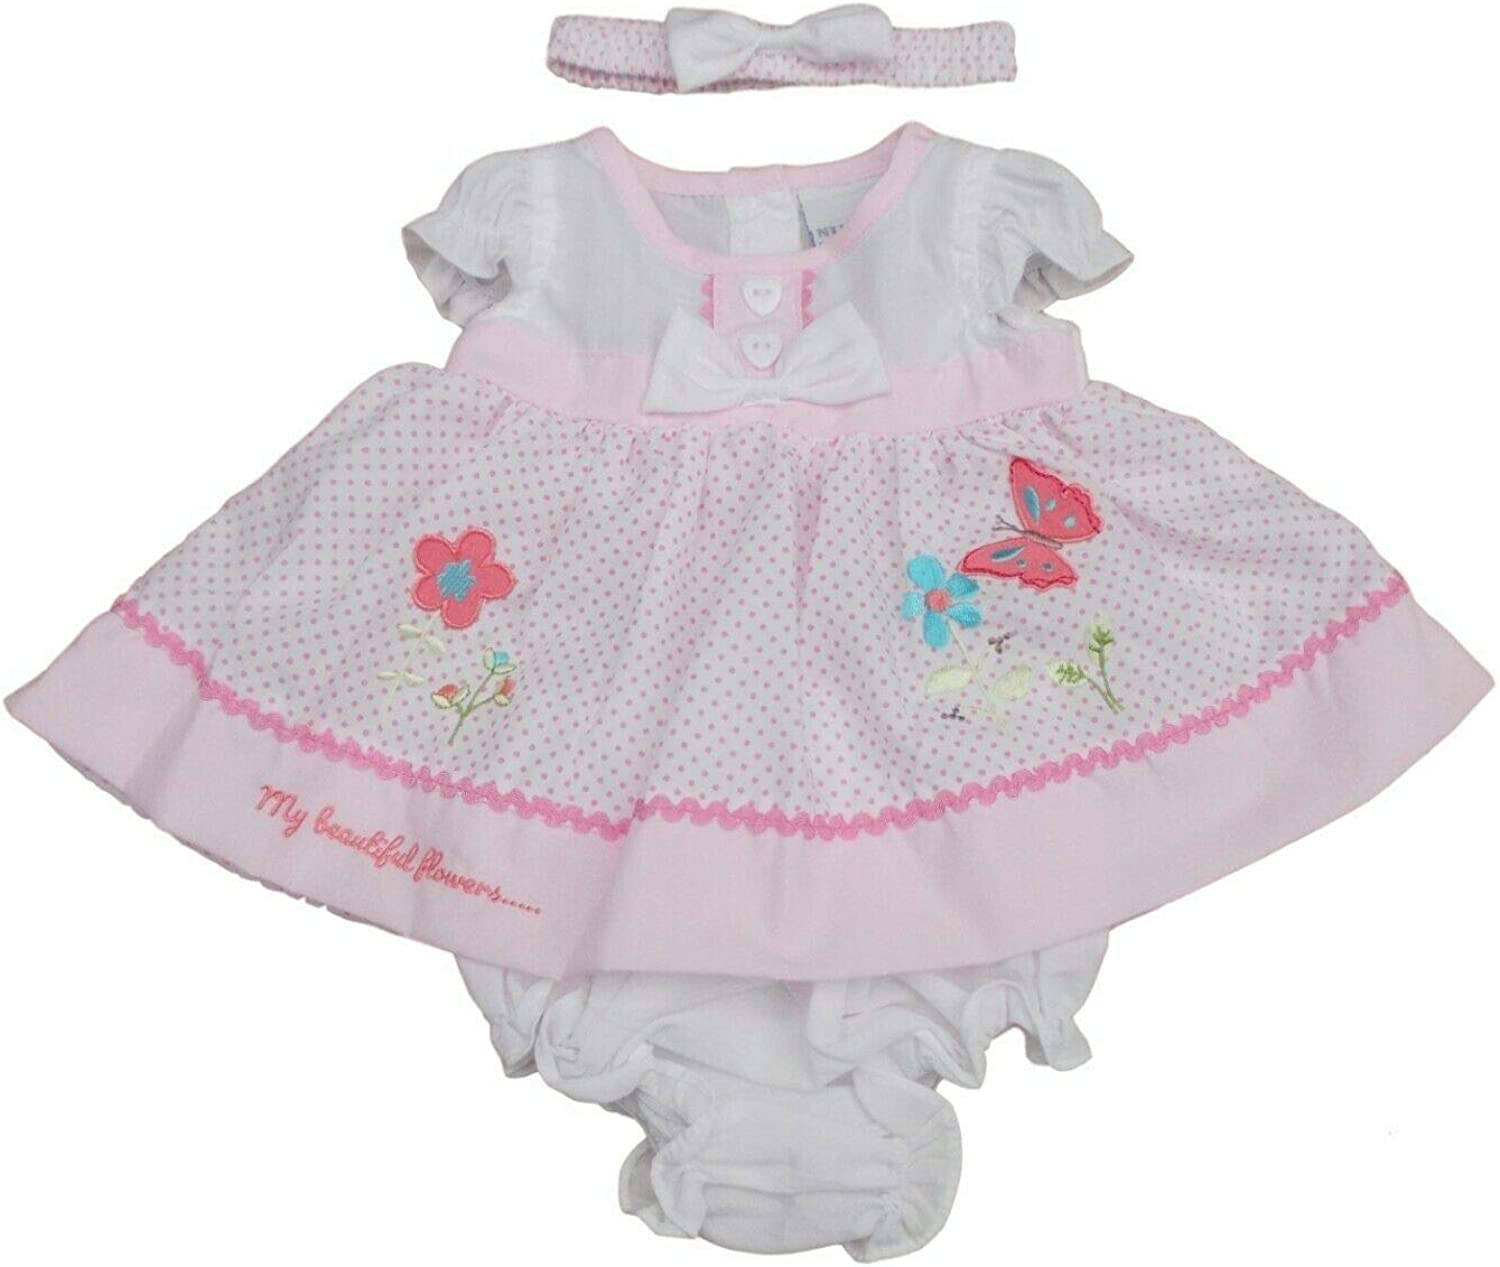 Premature Tiny Baby Butterfly /& Flowers Summer Dress Set Clothes Nursery Time with Tags